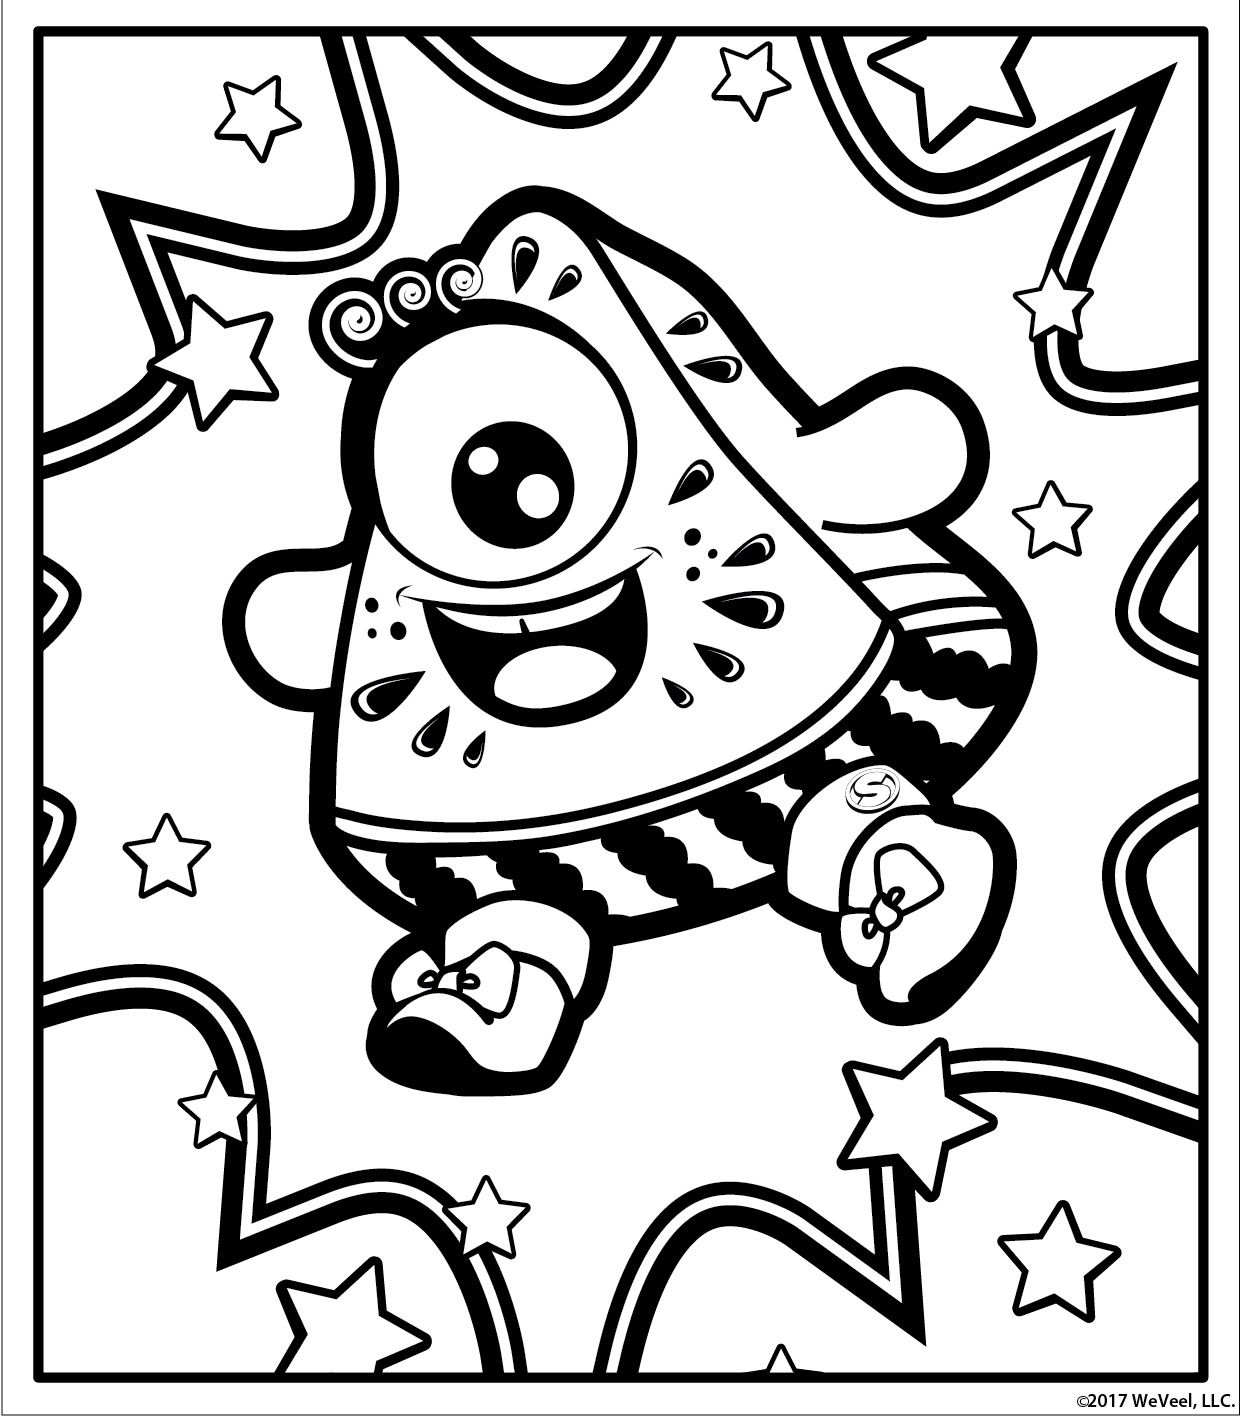 Coloring Pages Characters Coloring Pages Free Printable Coloring Pages Free Printable Coloring